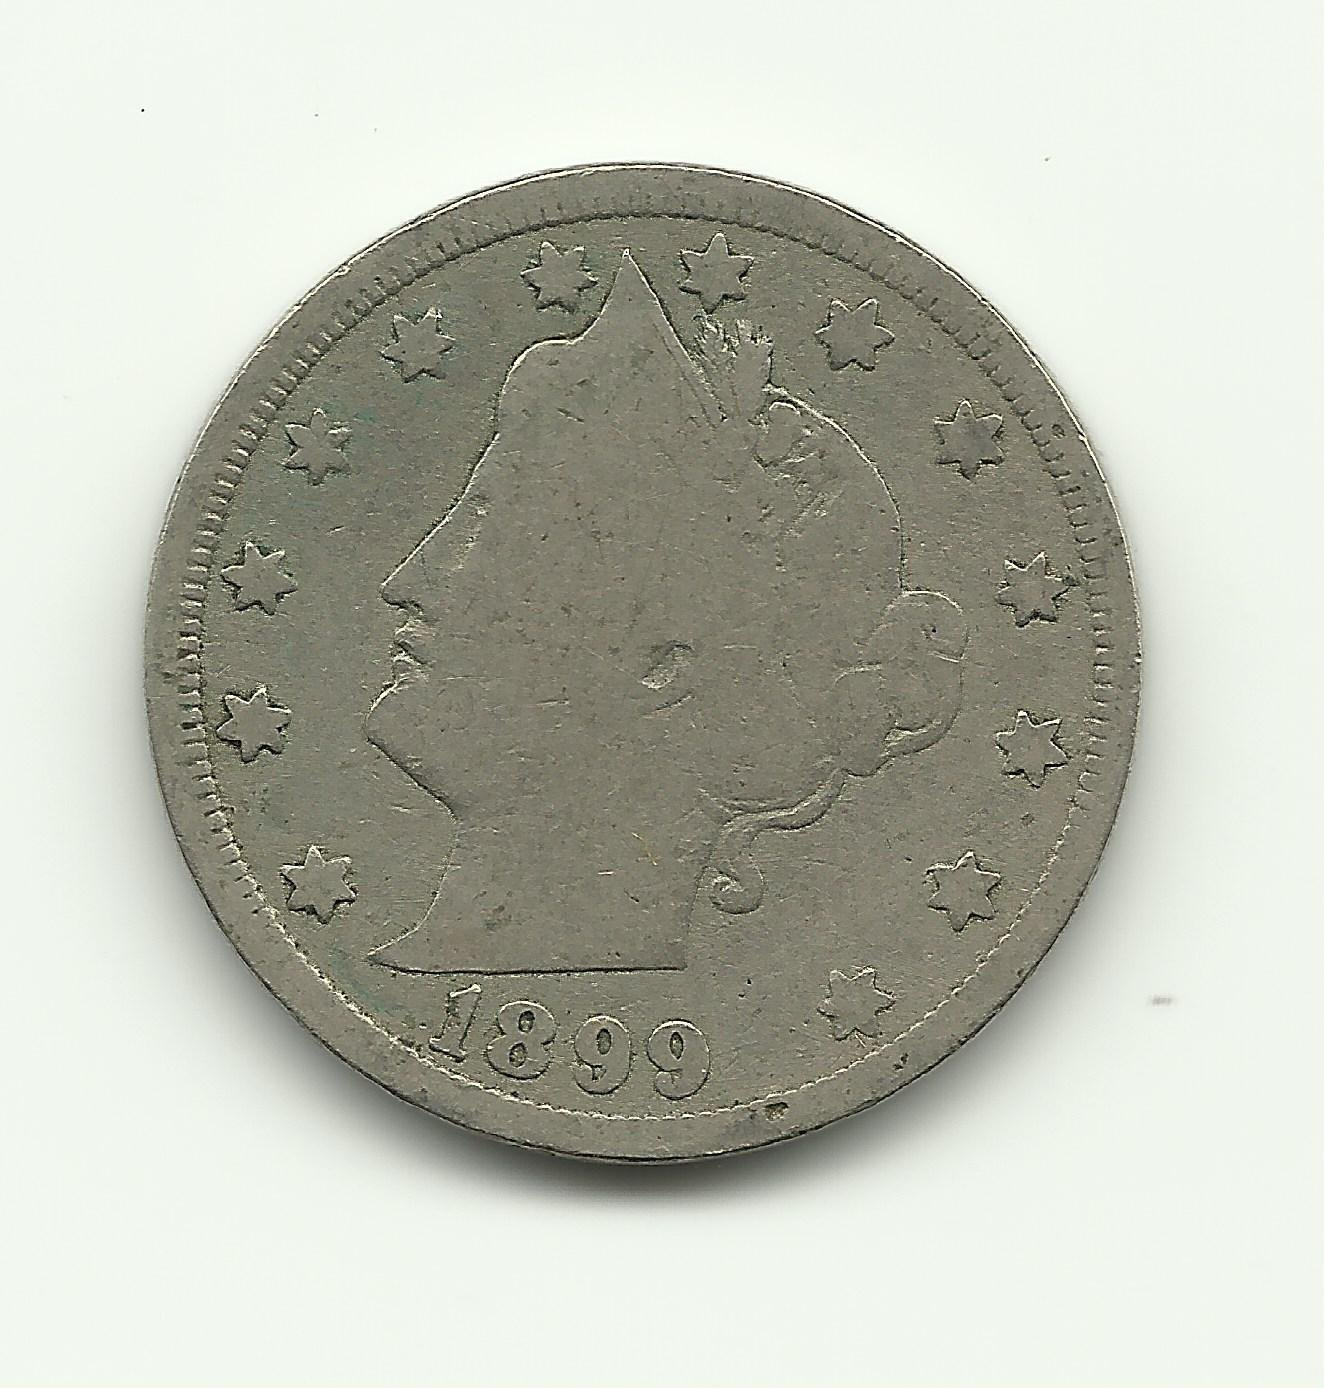 1899 #8 Liberty V Nickel